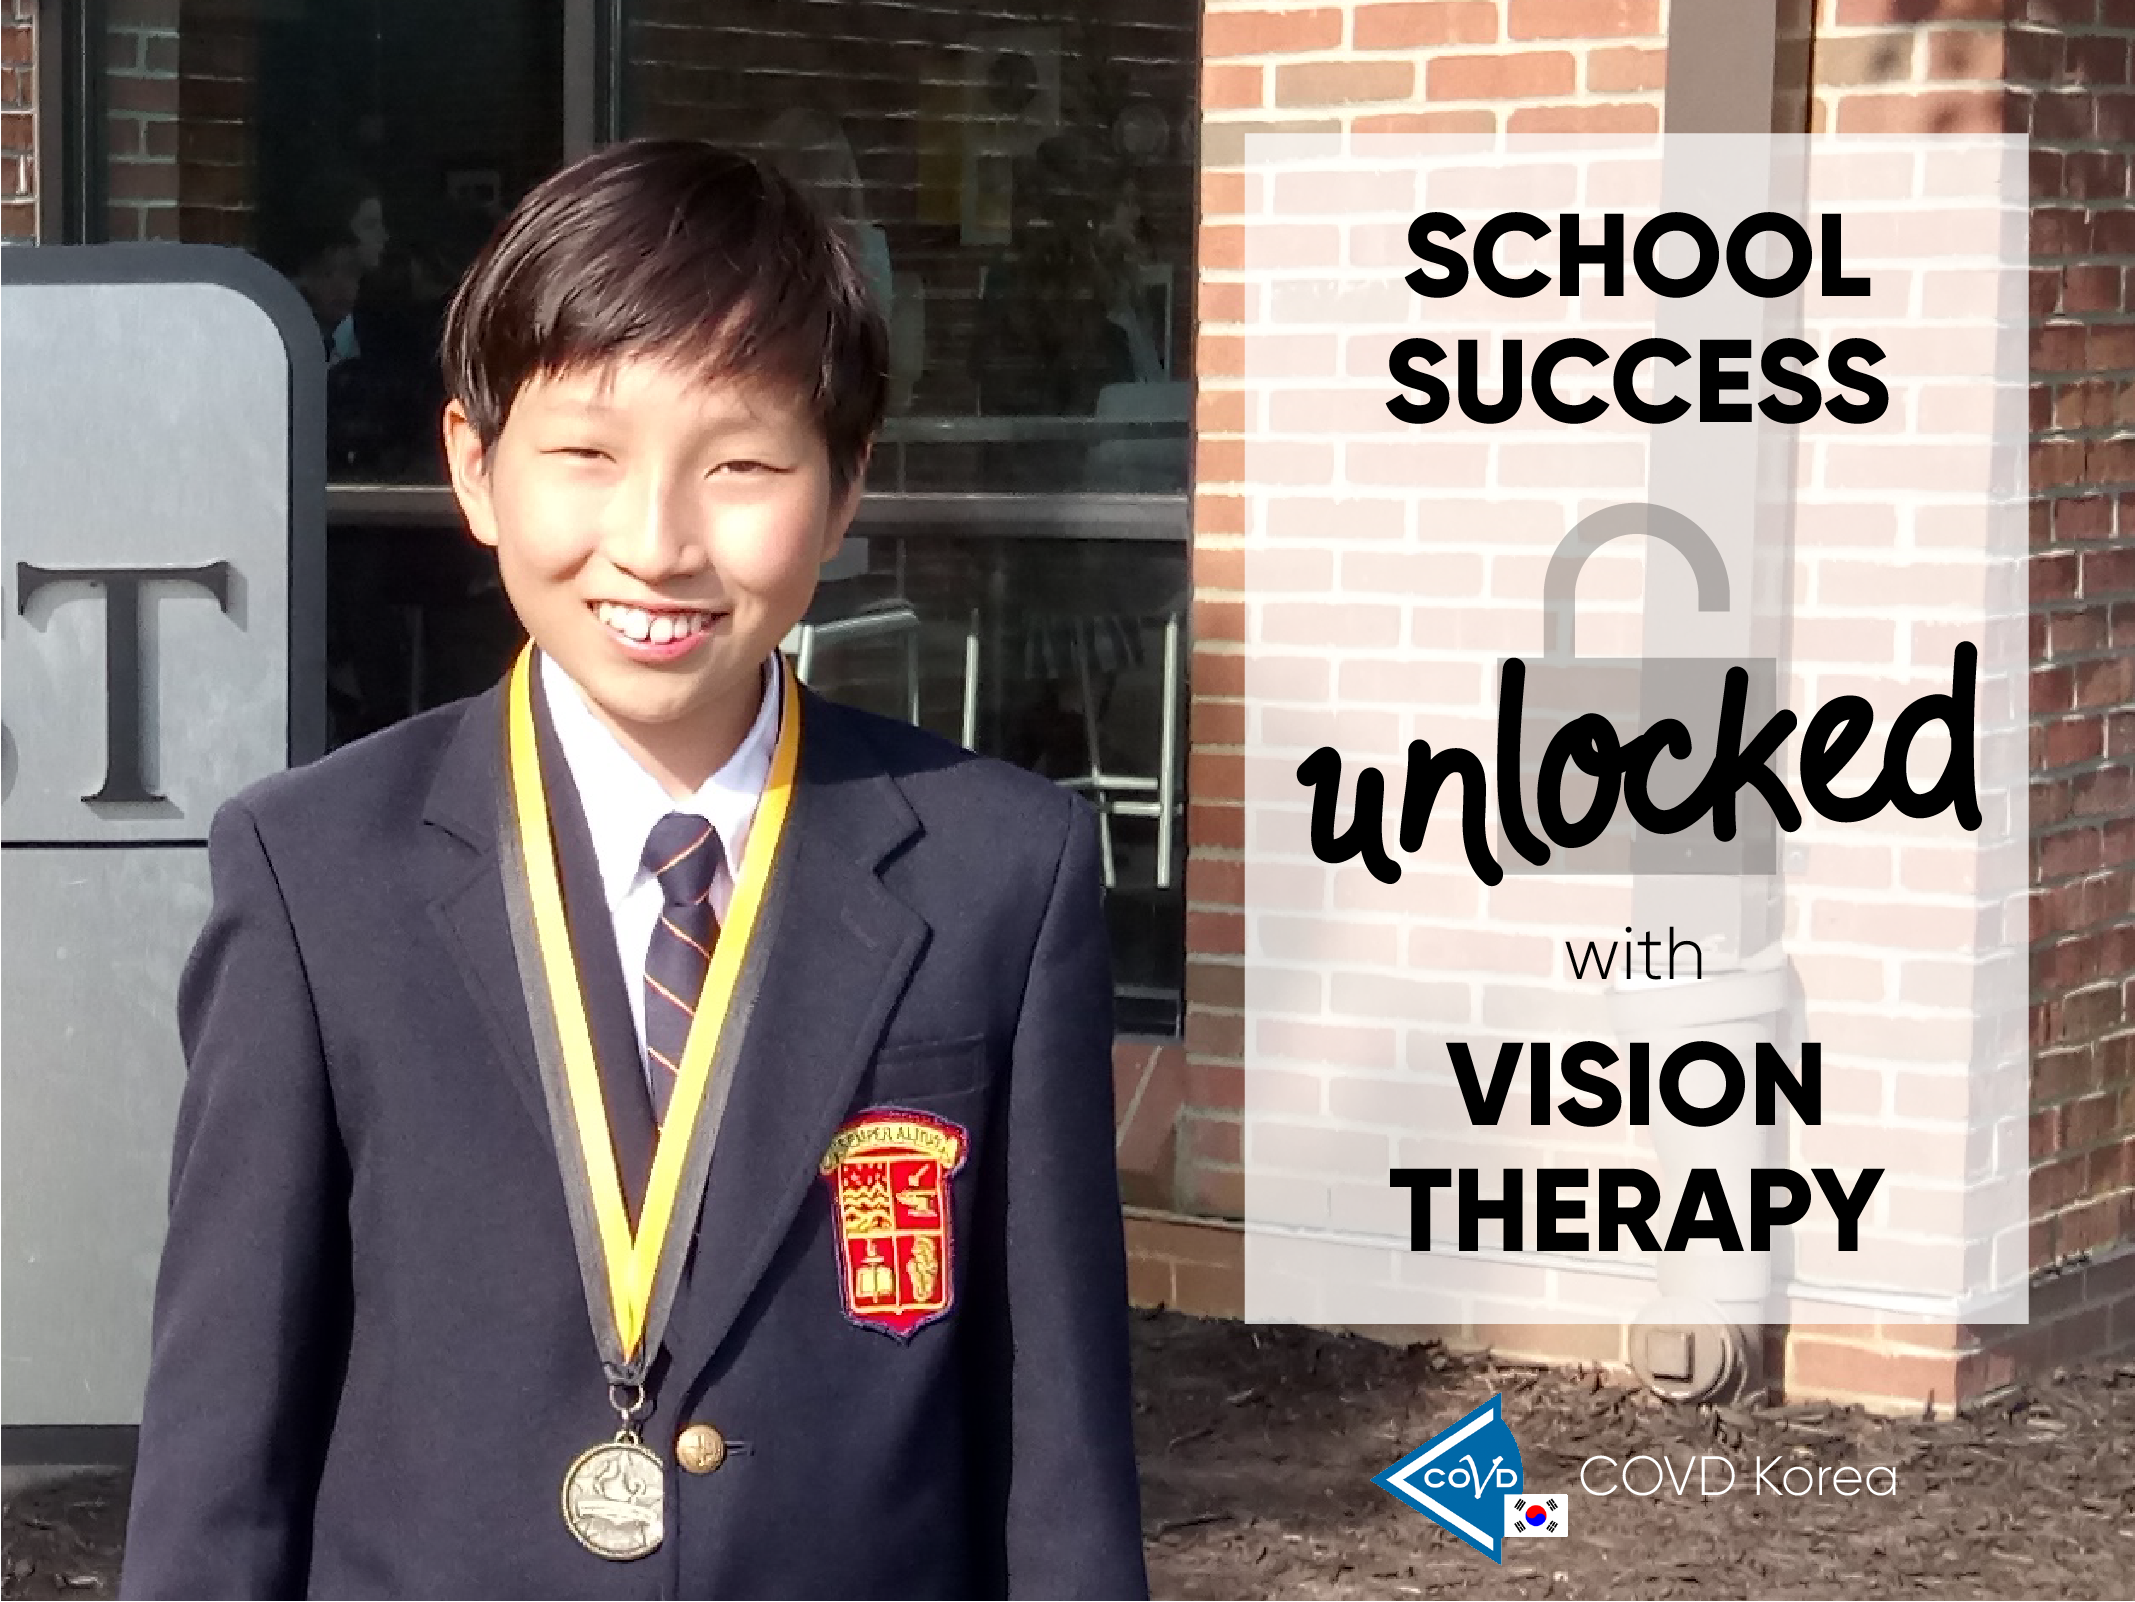 School success unlocked with vision therapy [COVD Korea Success Story]